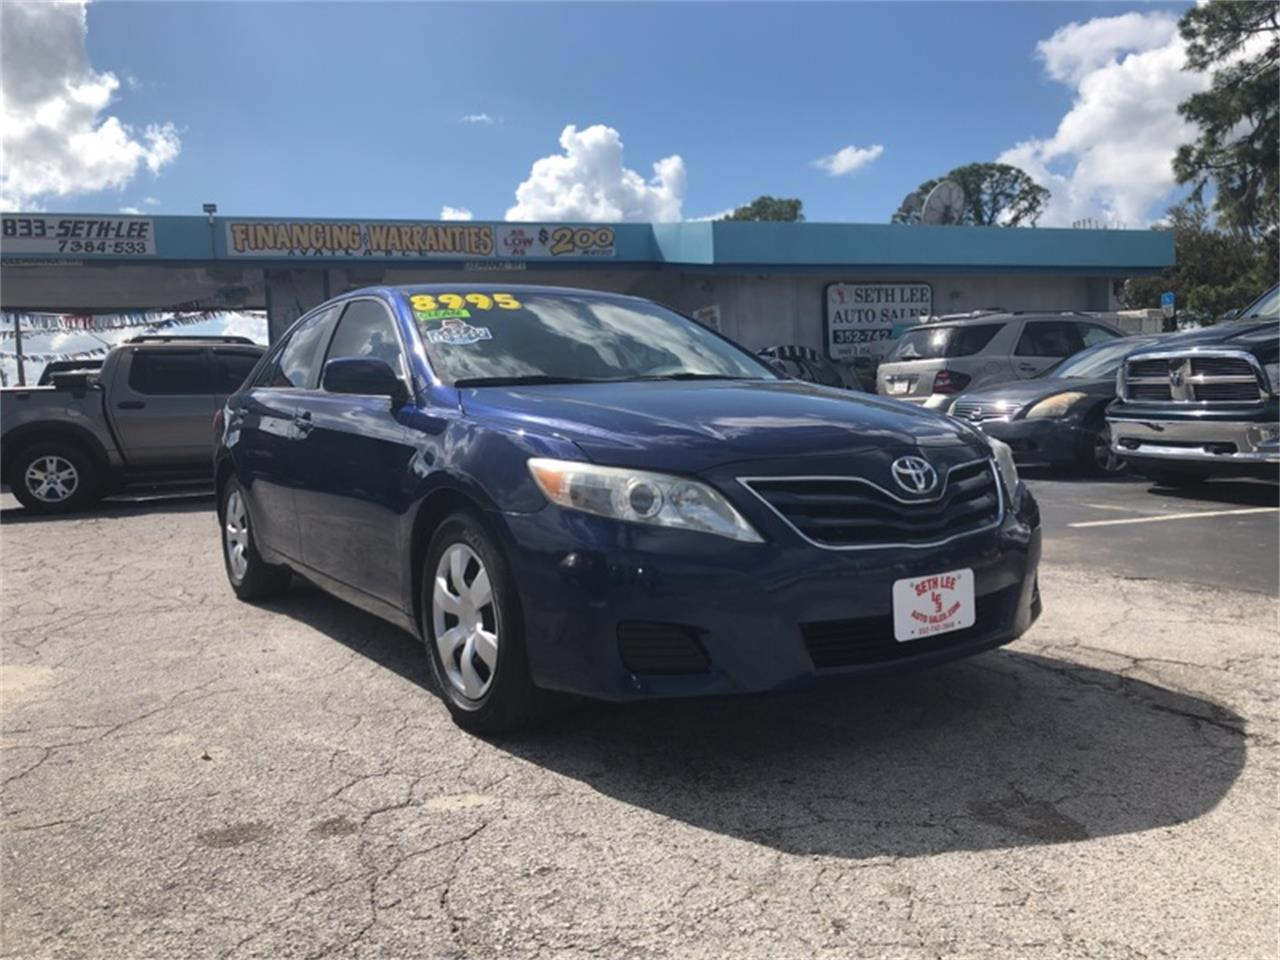 2010 Toyota Camry For Sale >> For Sale 2010 Toyota Camry In Tavares Florida